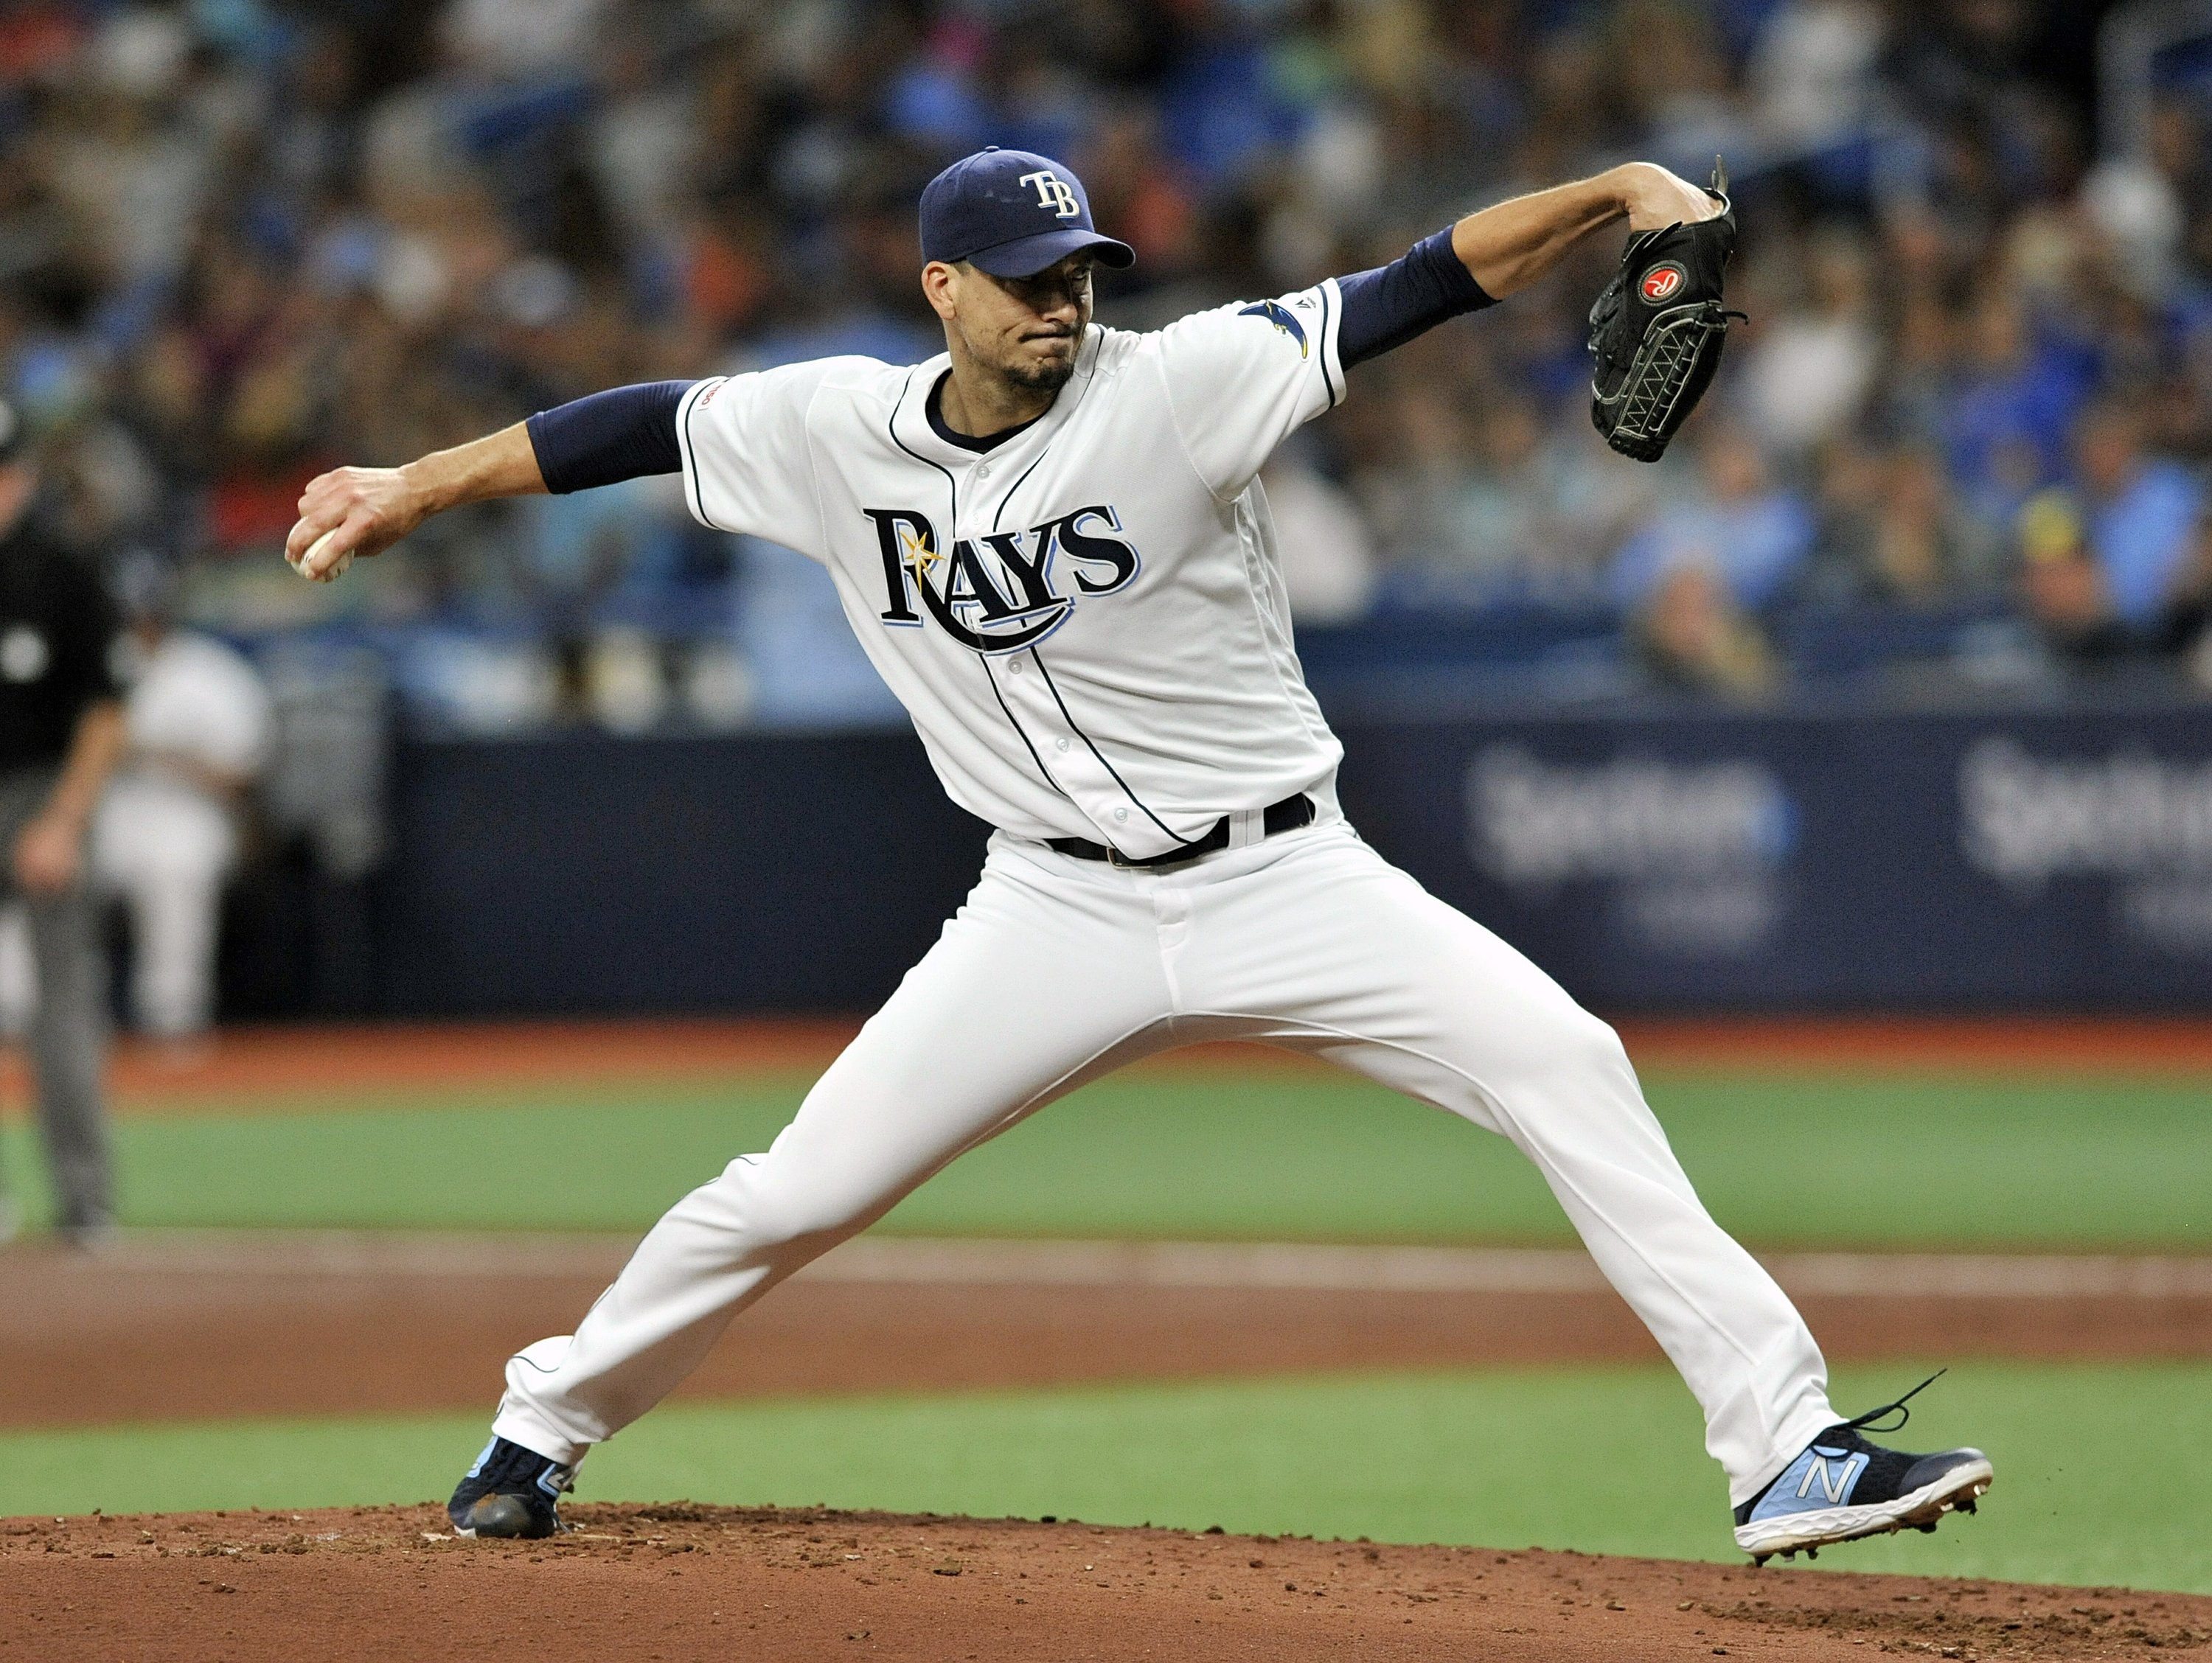 all star charlie morton ks 12 rays beat orioles 6 3 charlie morton ks 12 rays beat orioles